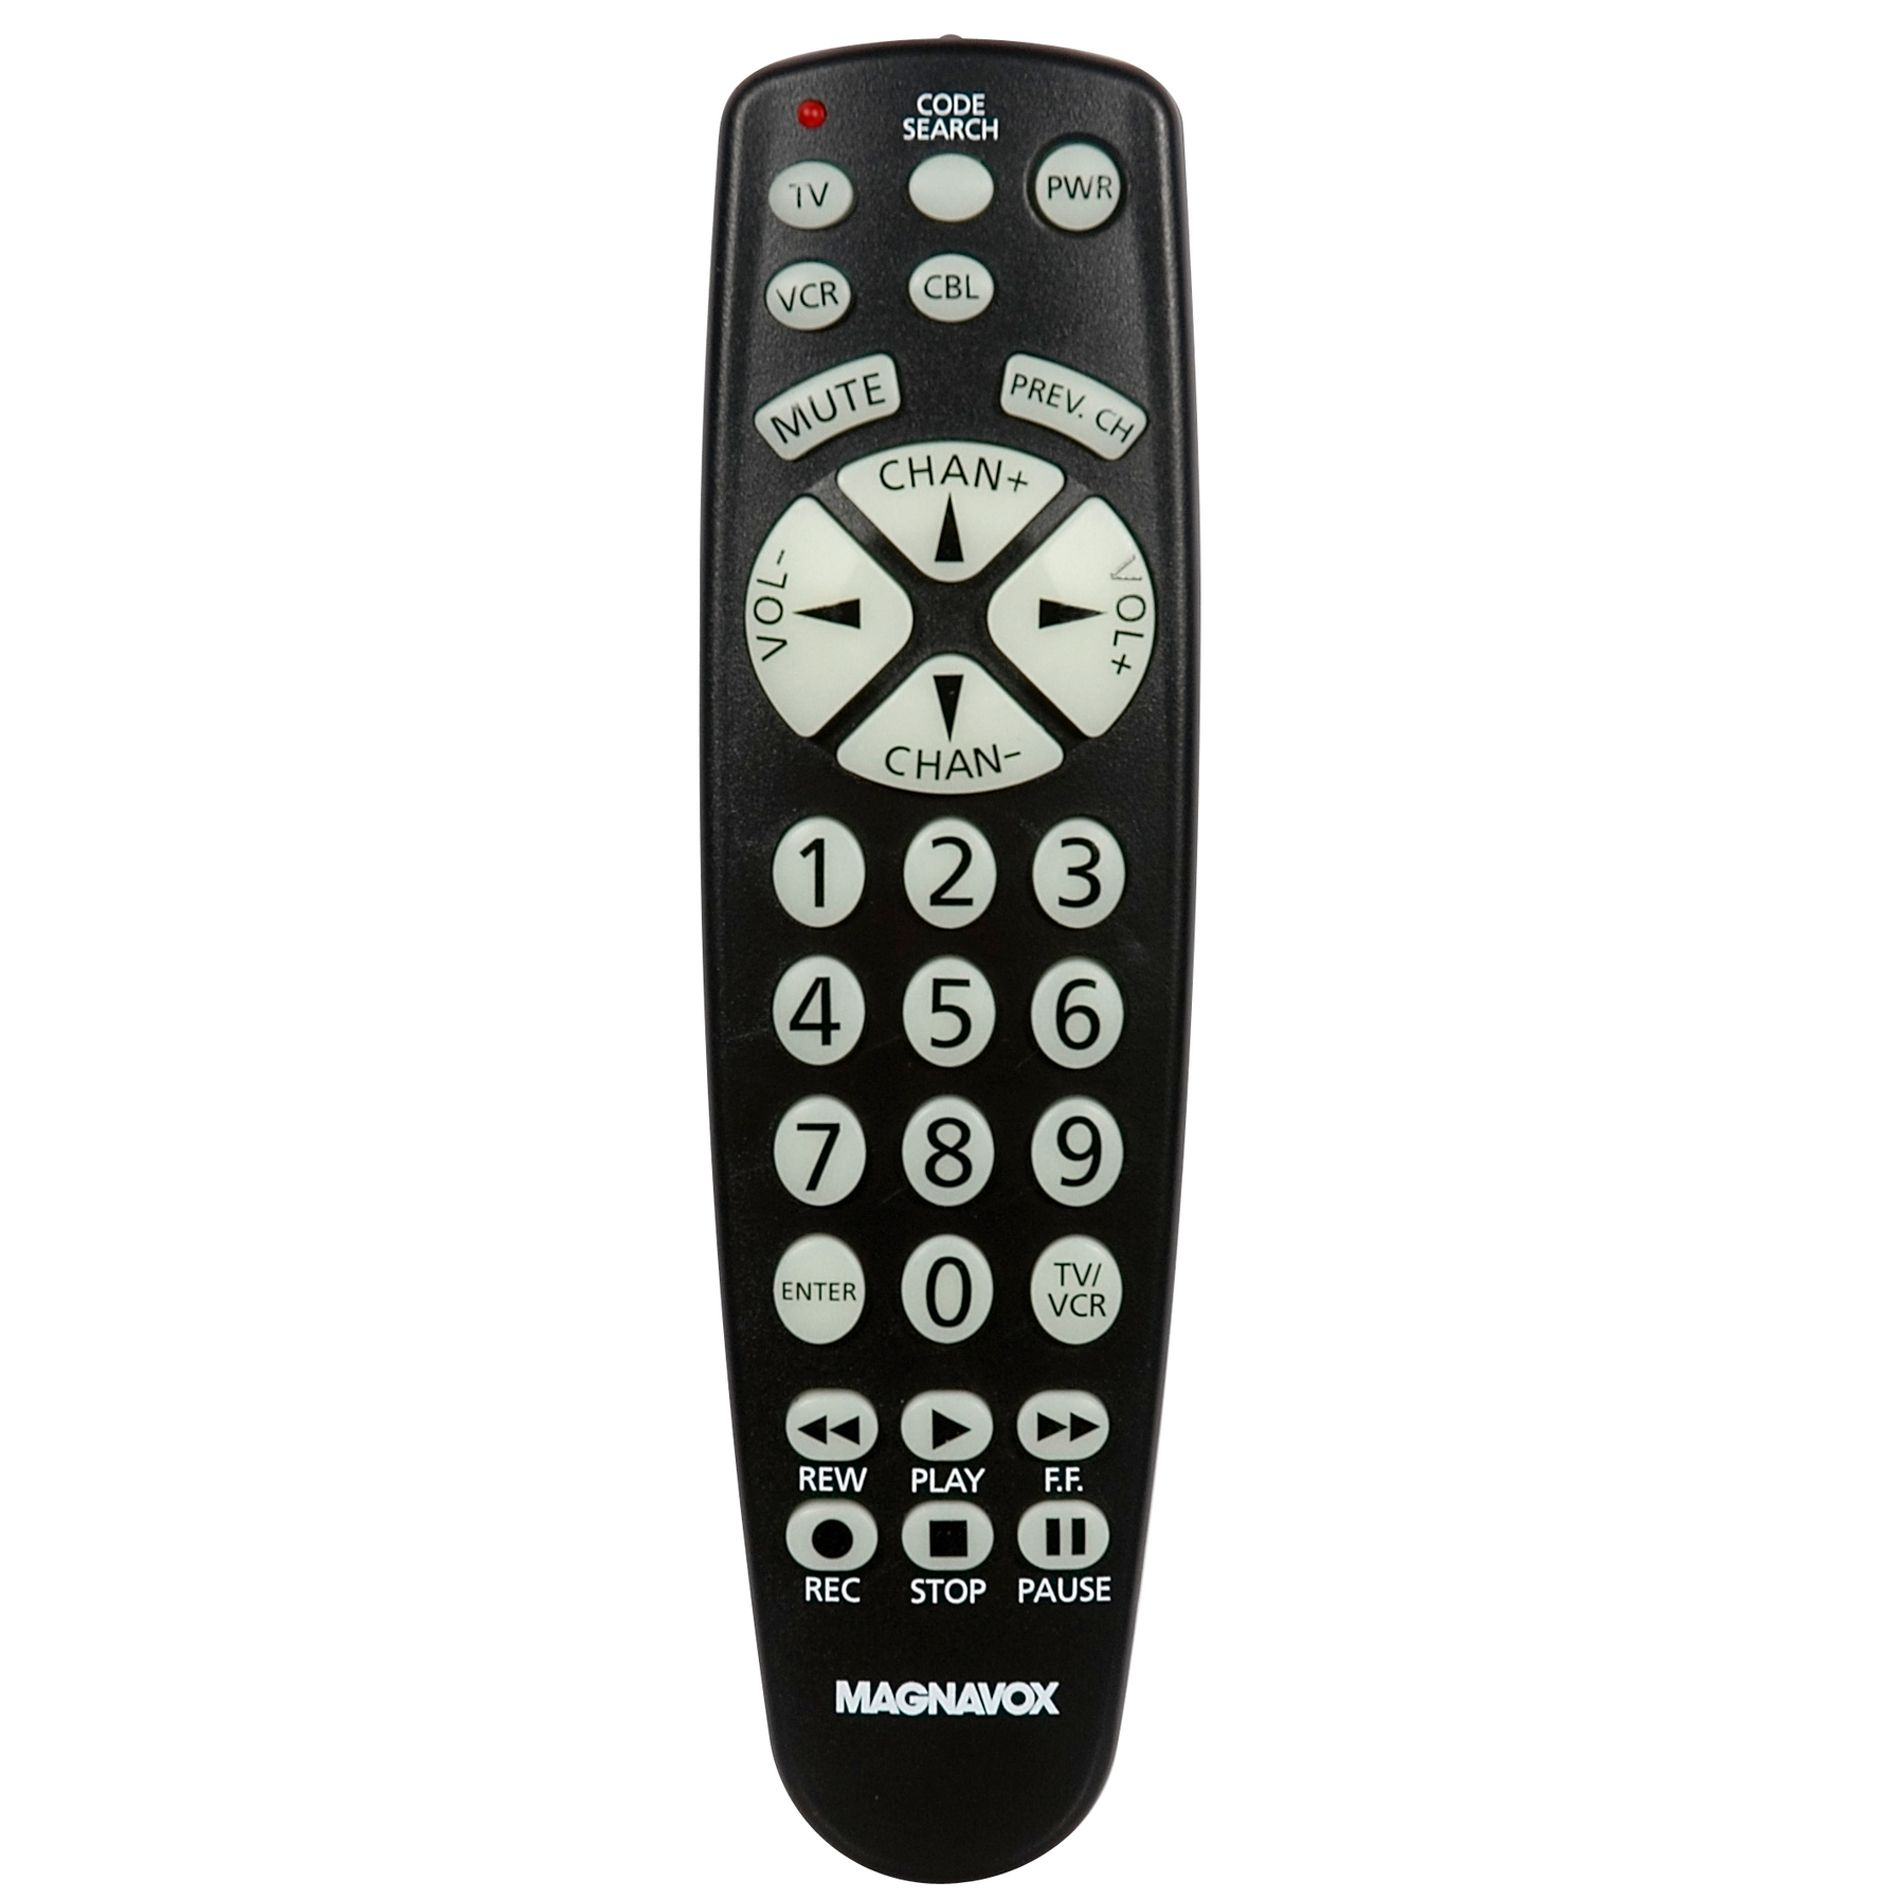 3-Device Universal Remote Control                                                                                                at mygofer.com